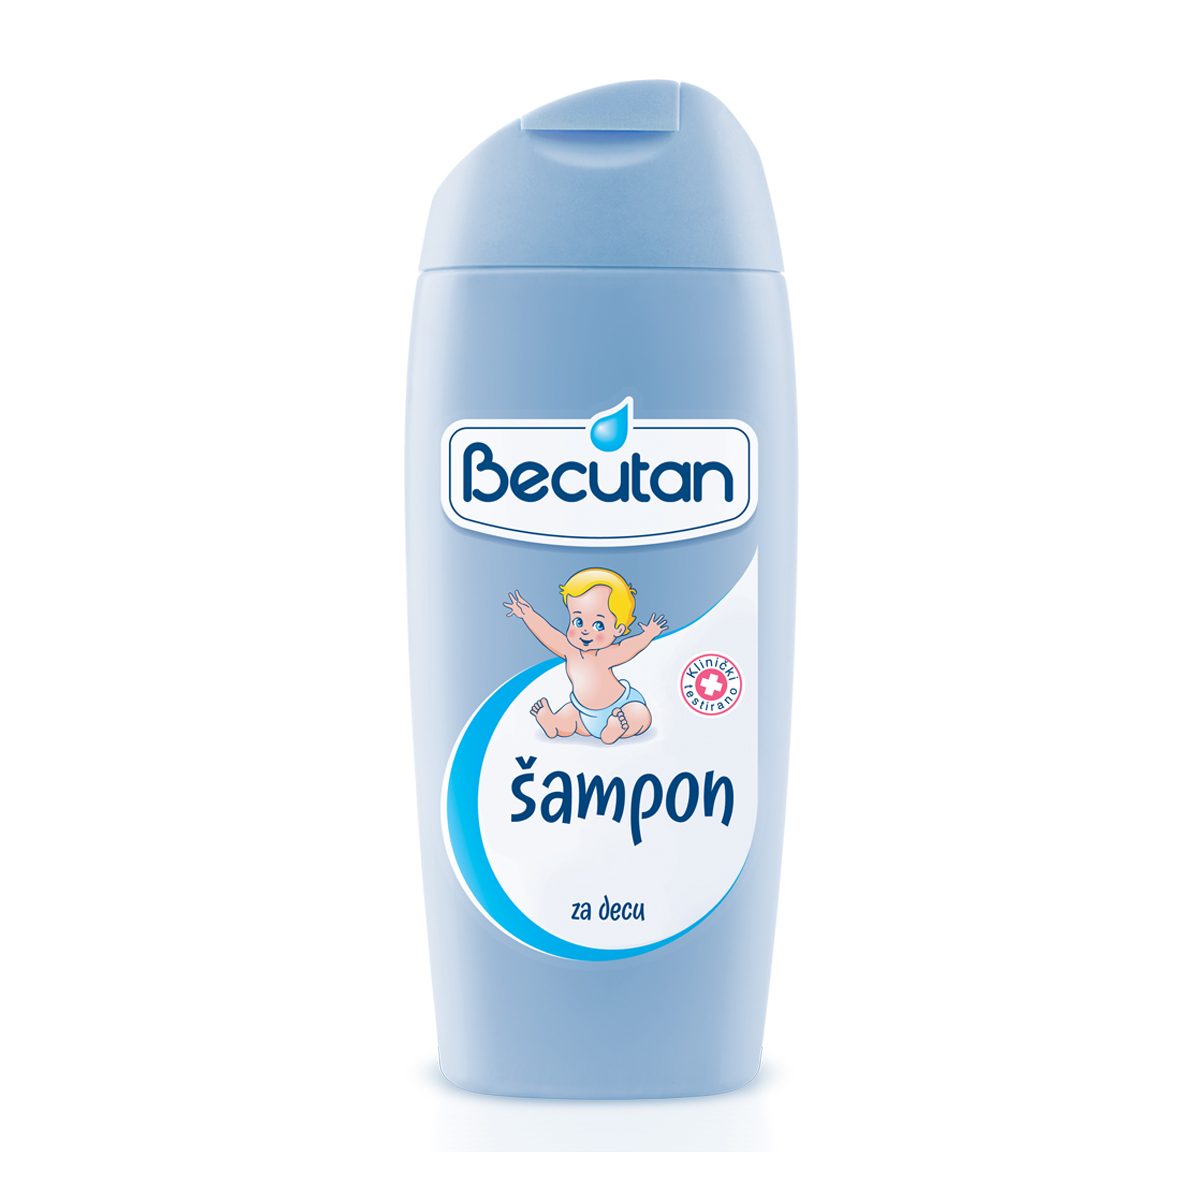 BECUTAN SAMPON 200ML